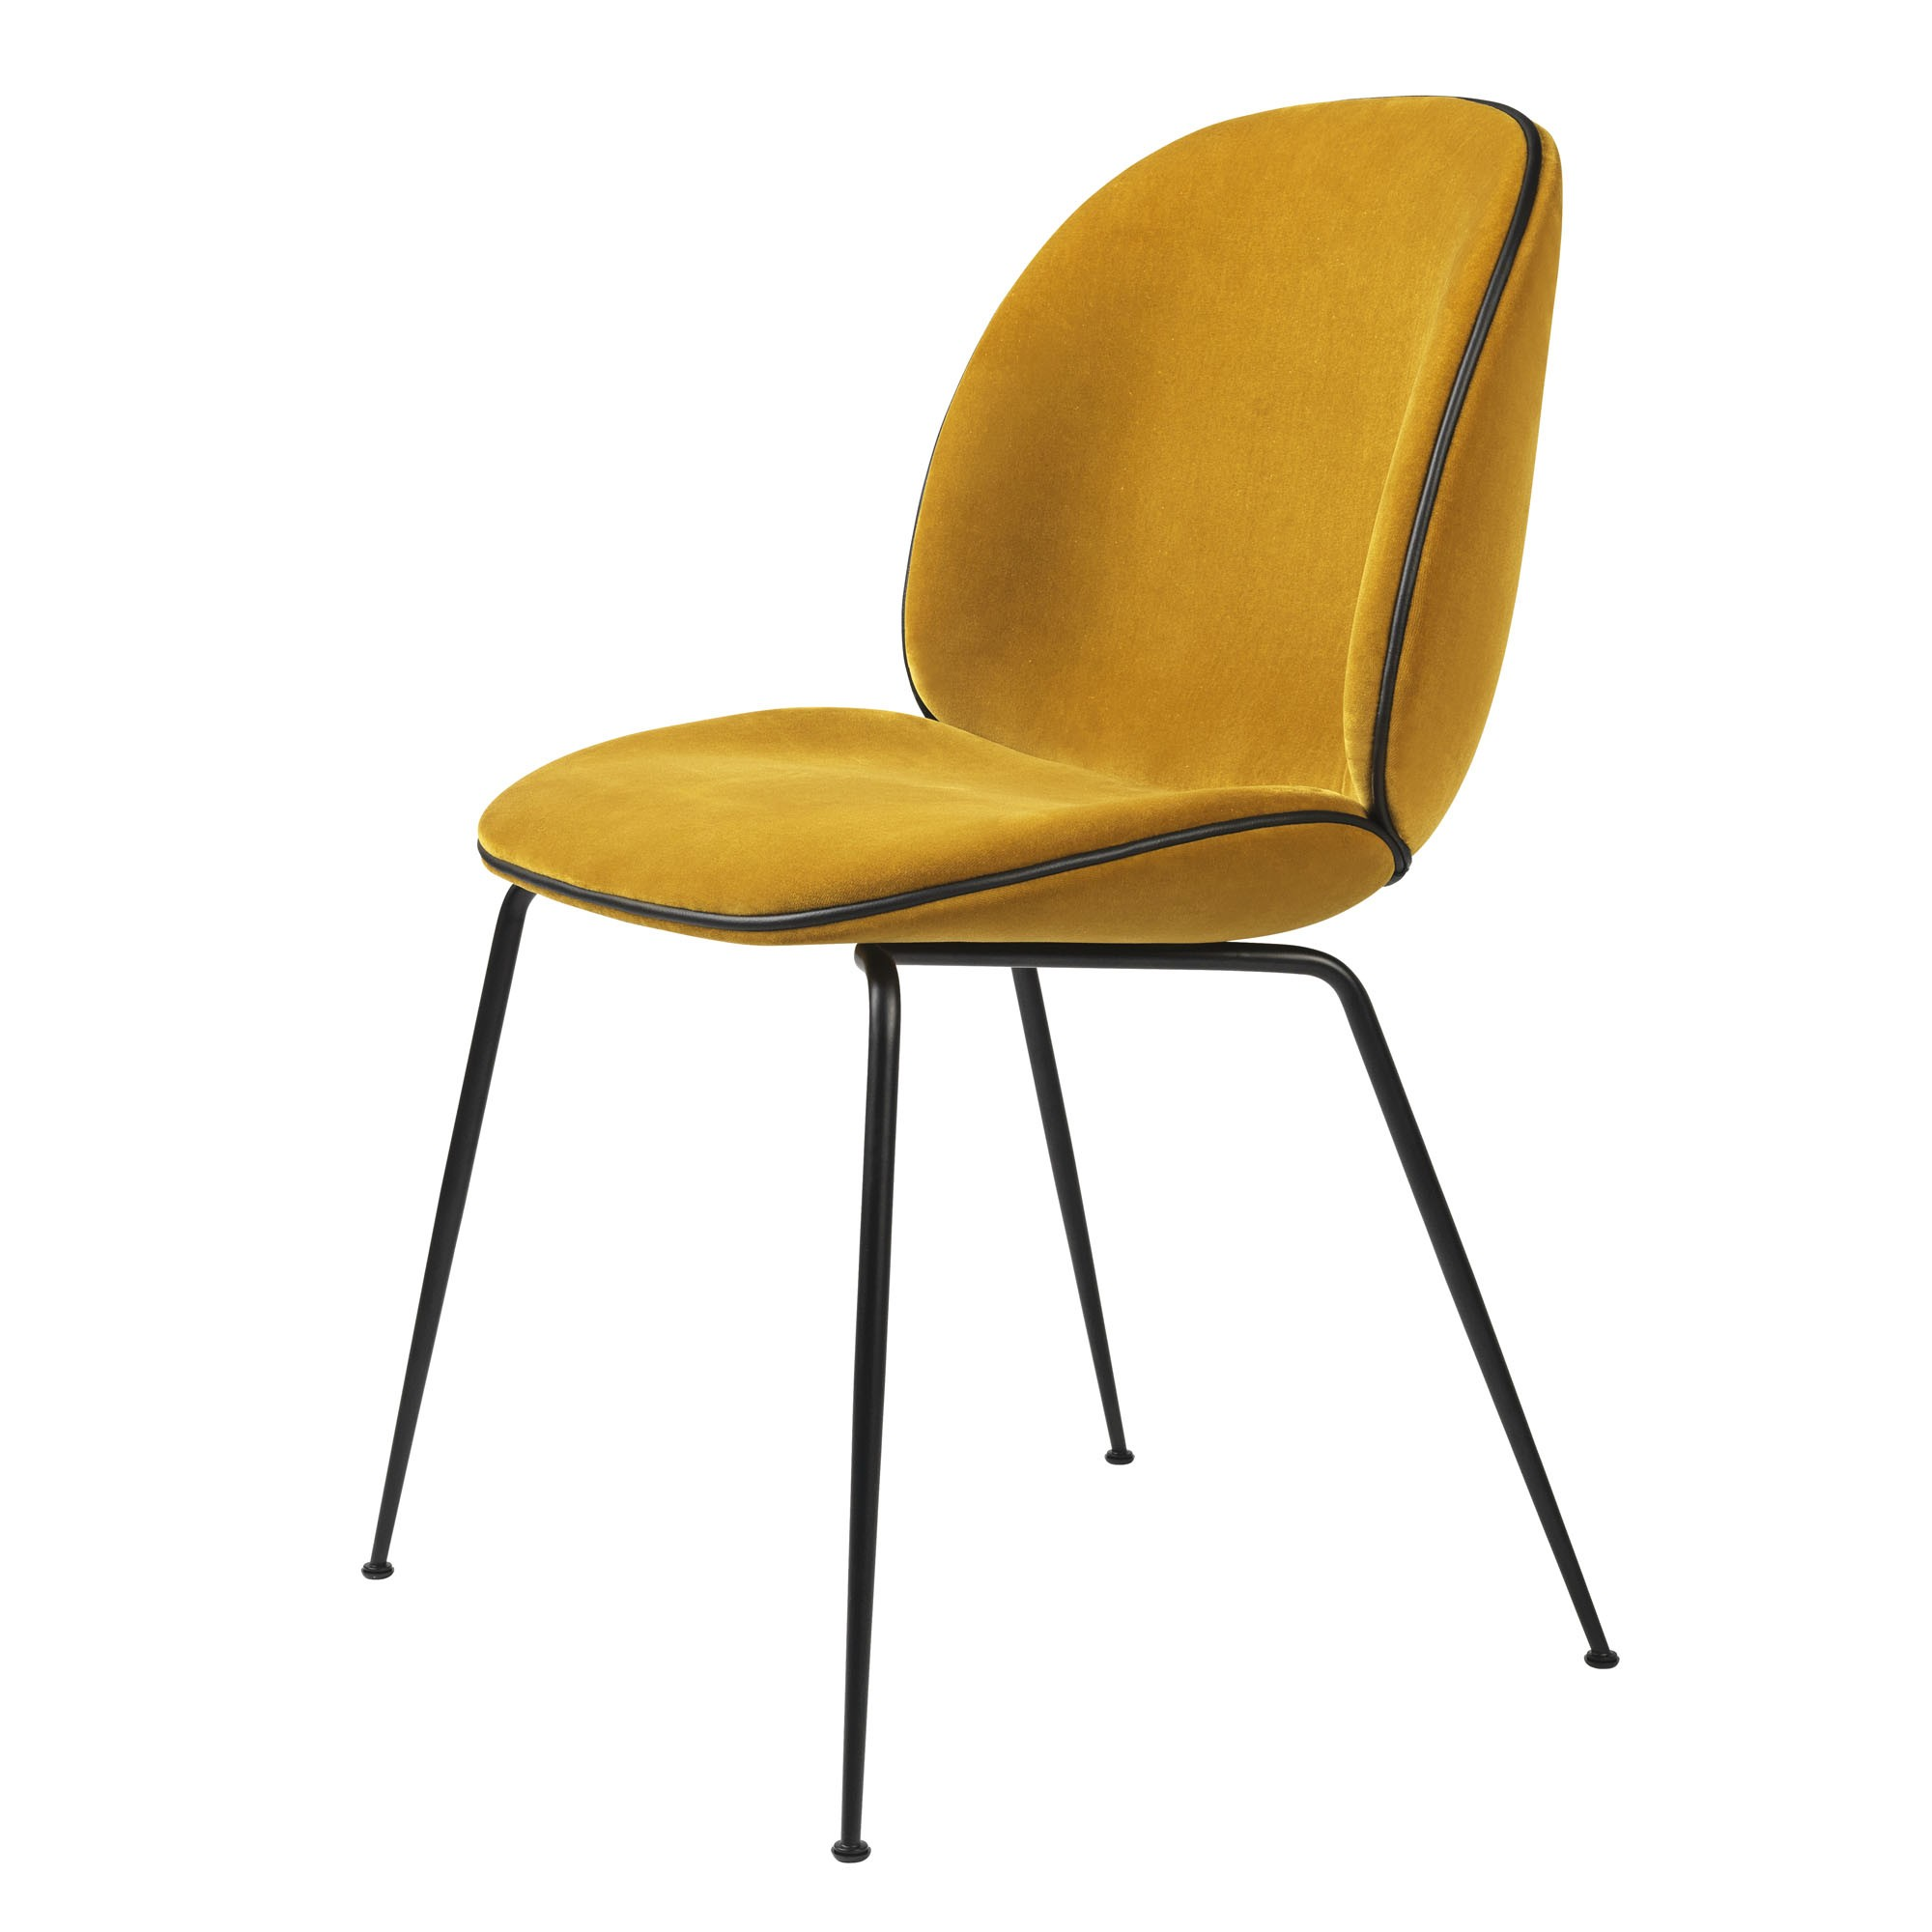 BEETLE chair Velluto di Cotone 312 Gubi